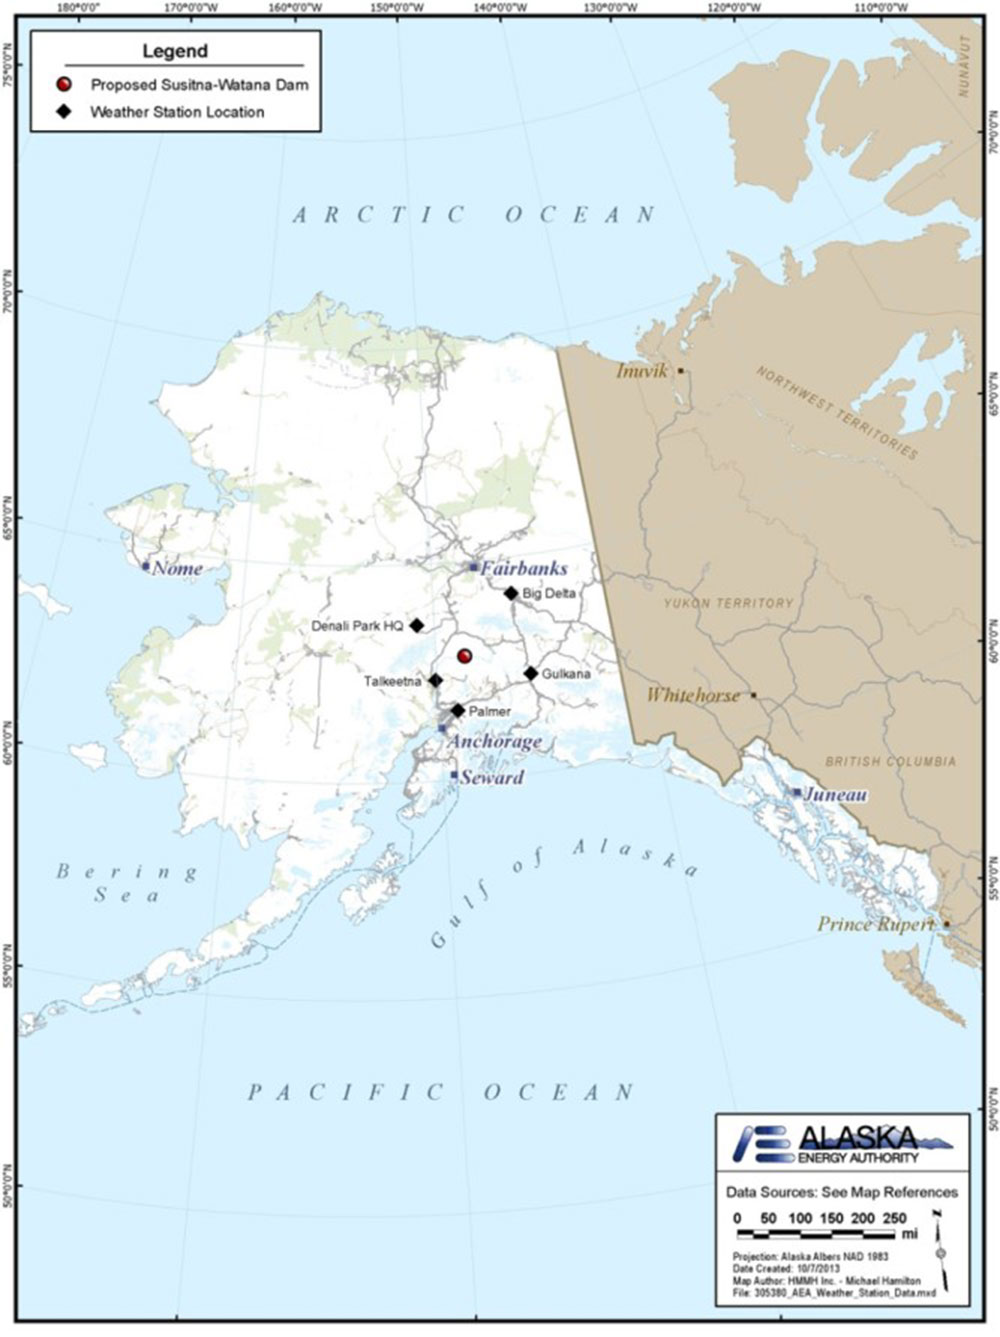 Susitna-Watana Hydroelectric Project